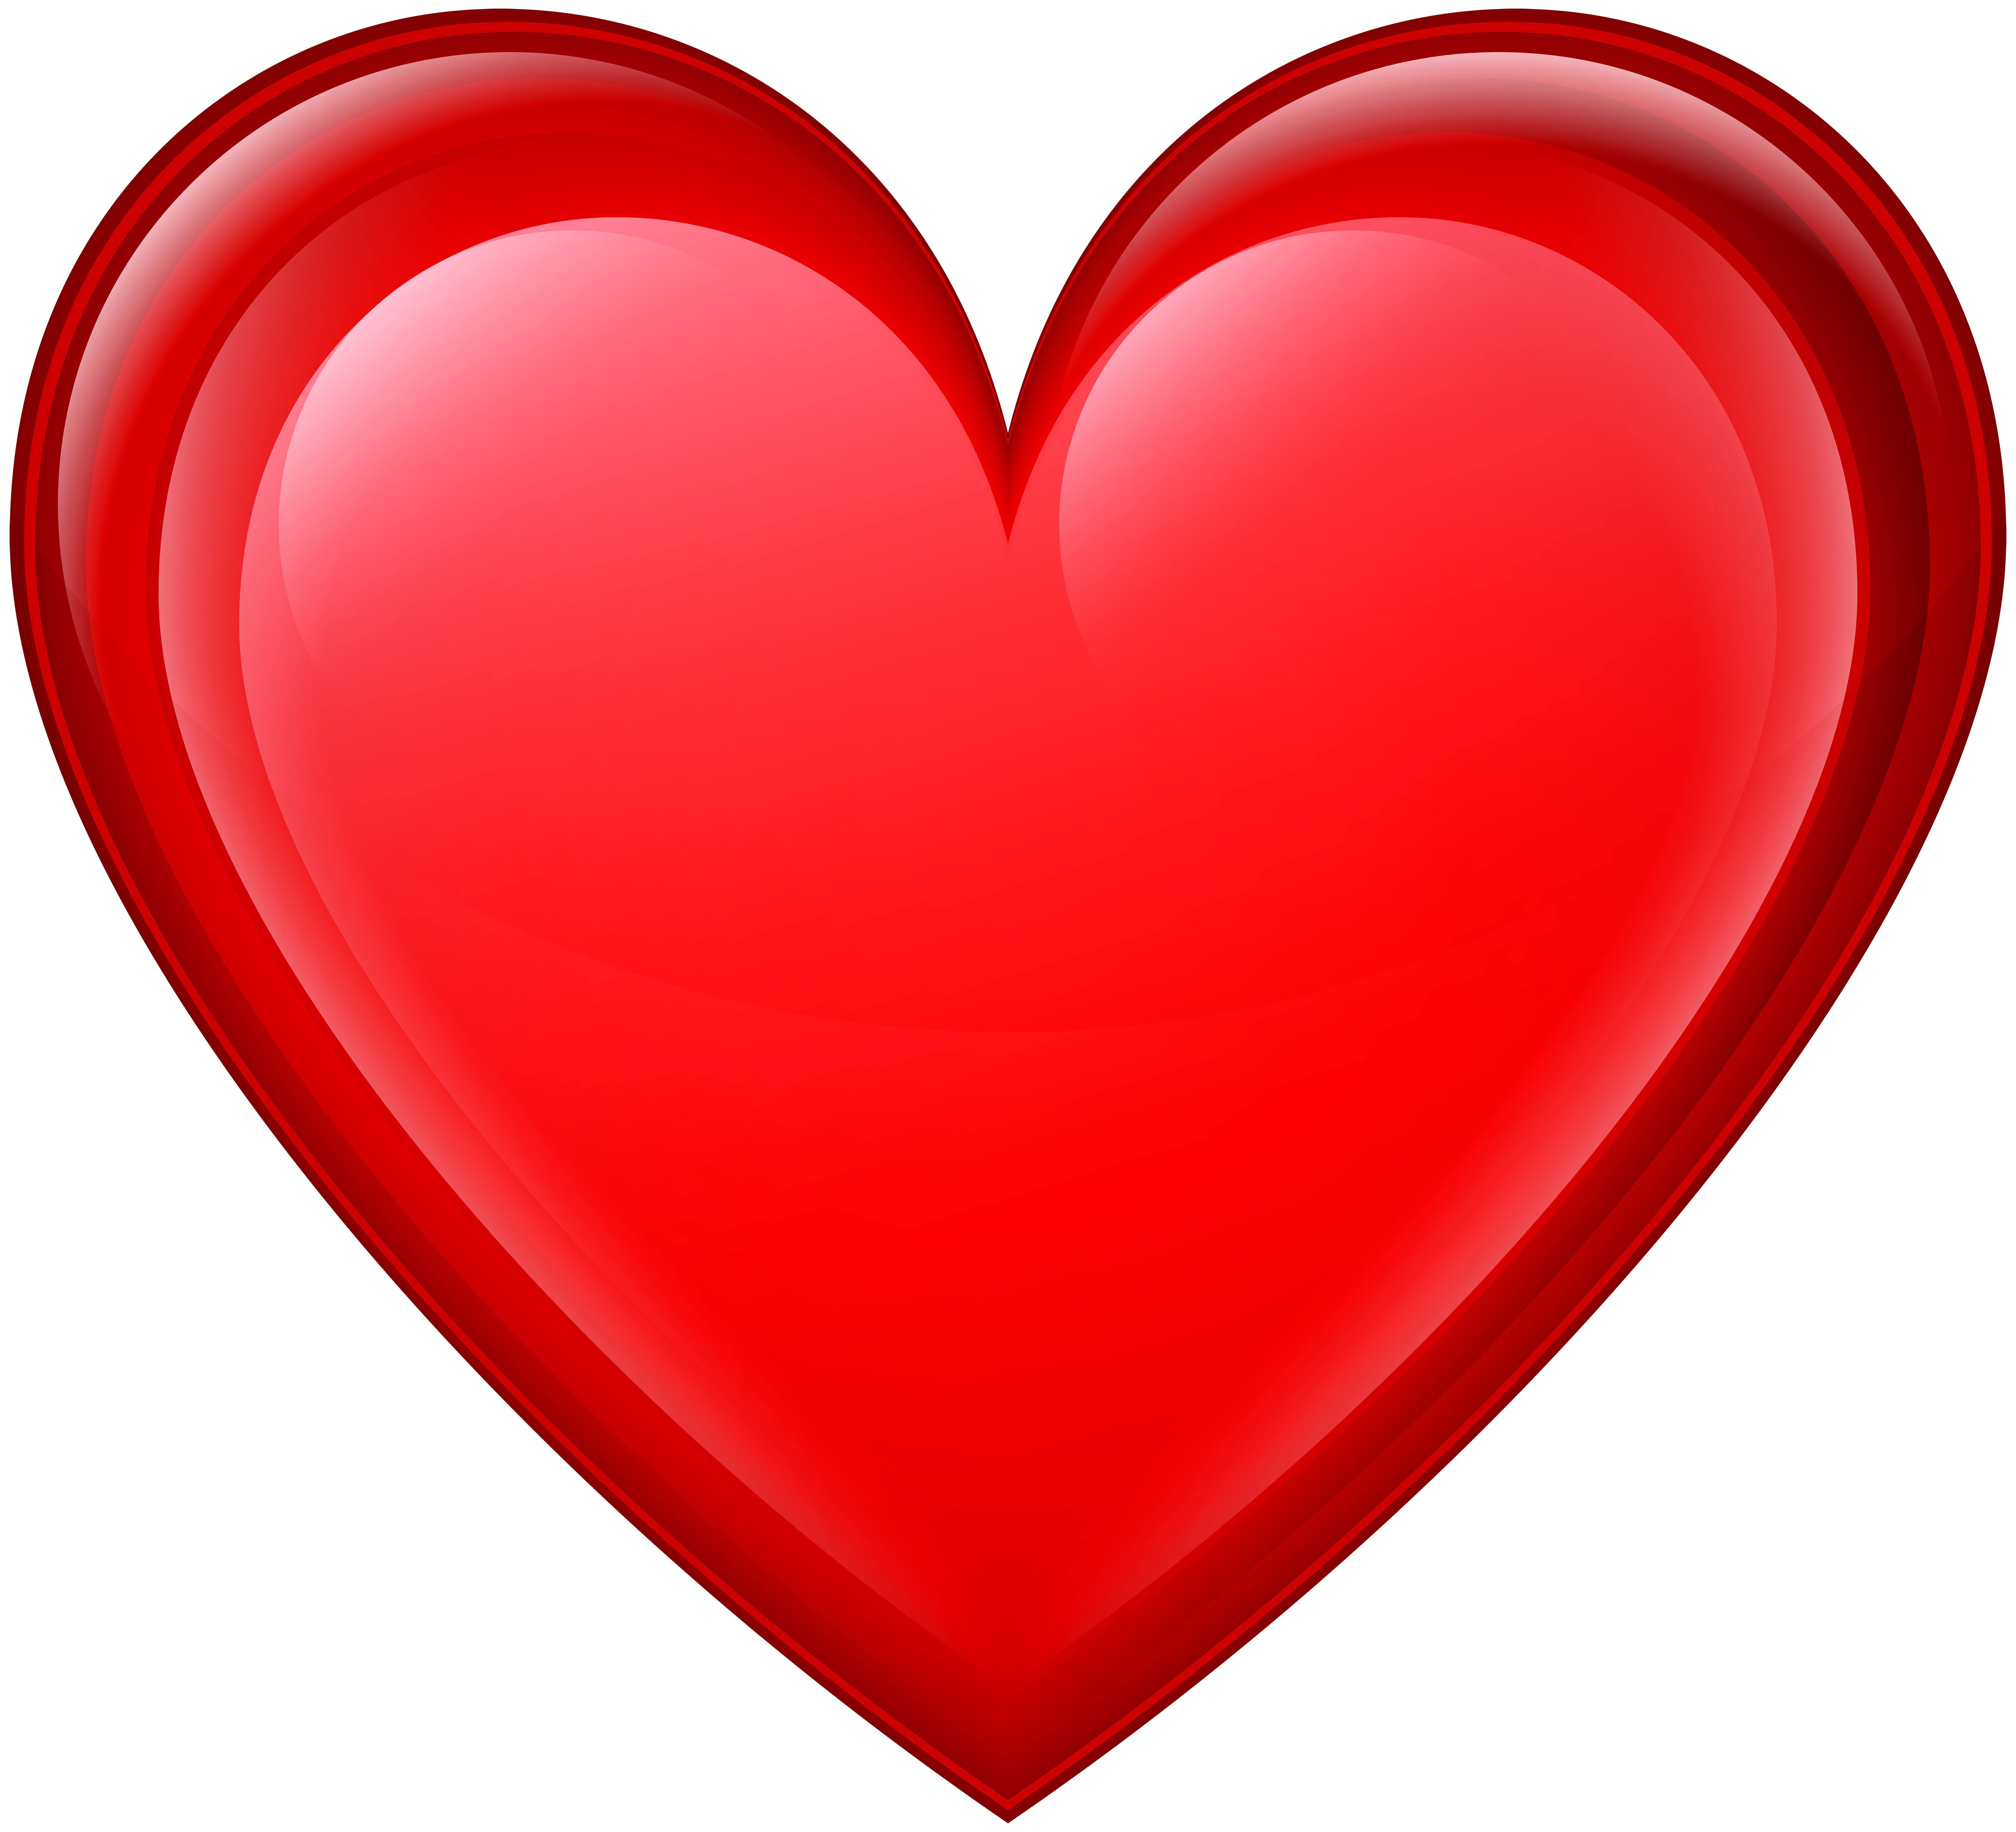 Heart Red PNG Transparent Clip Art Image.